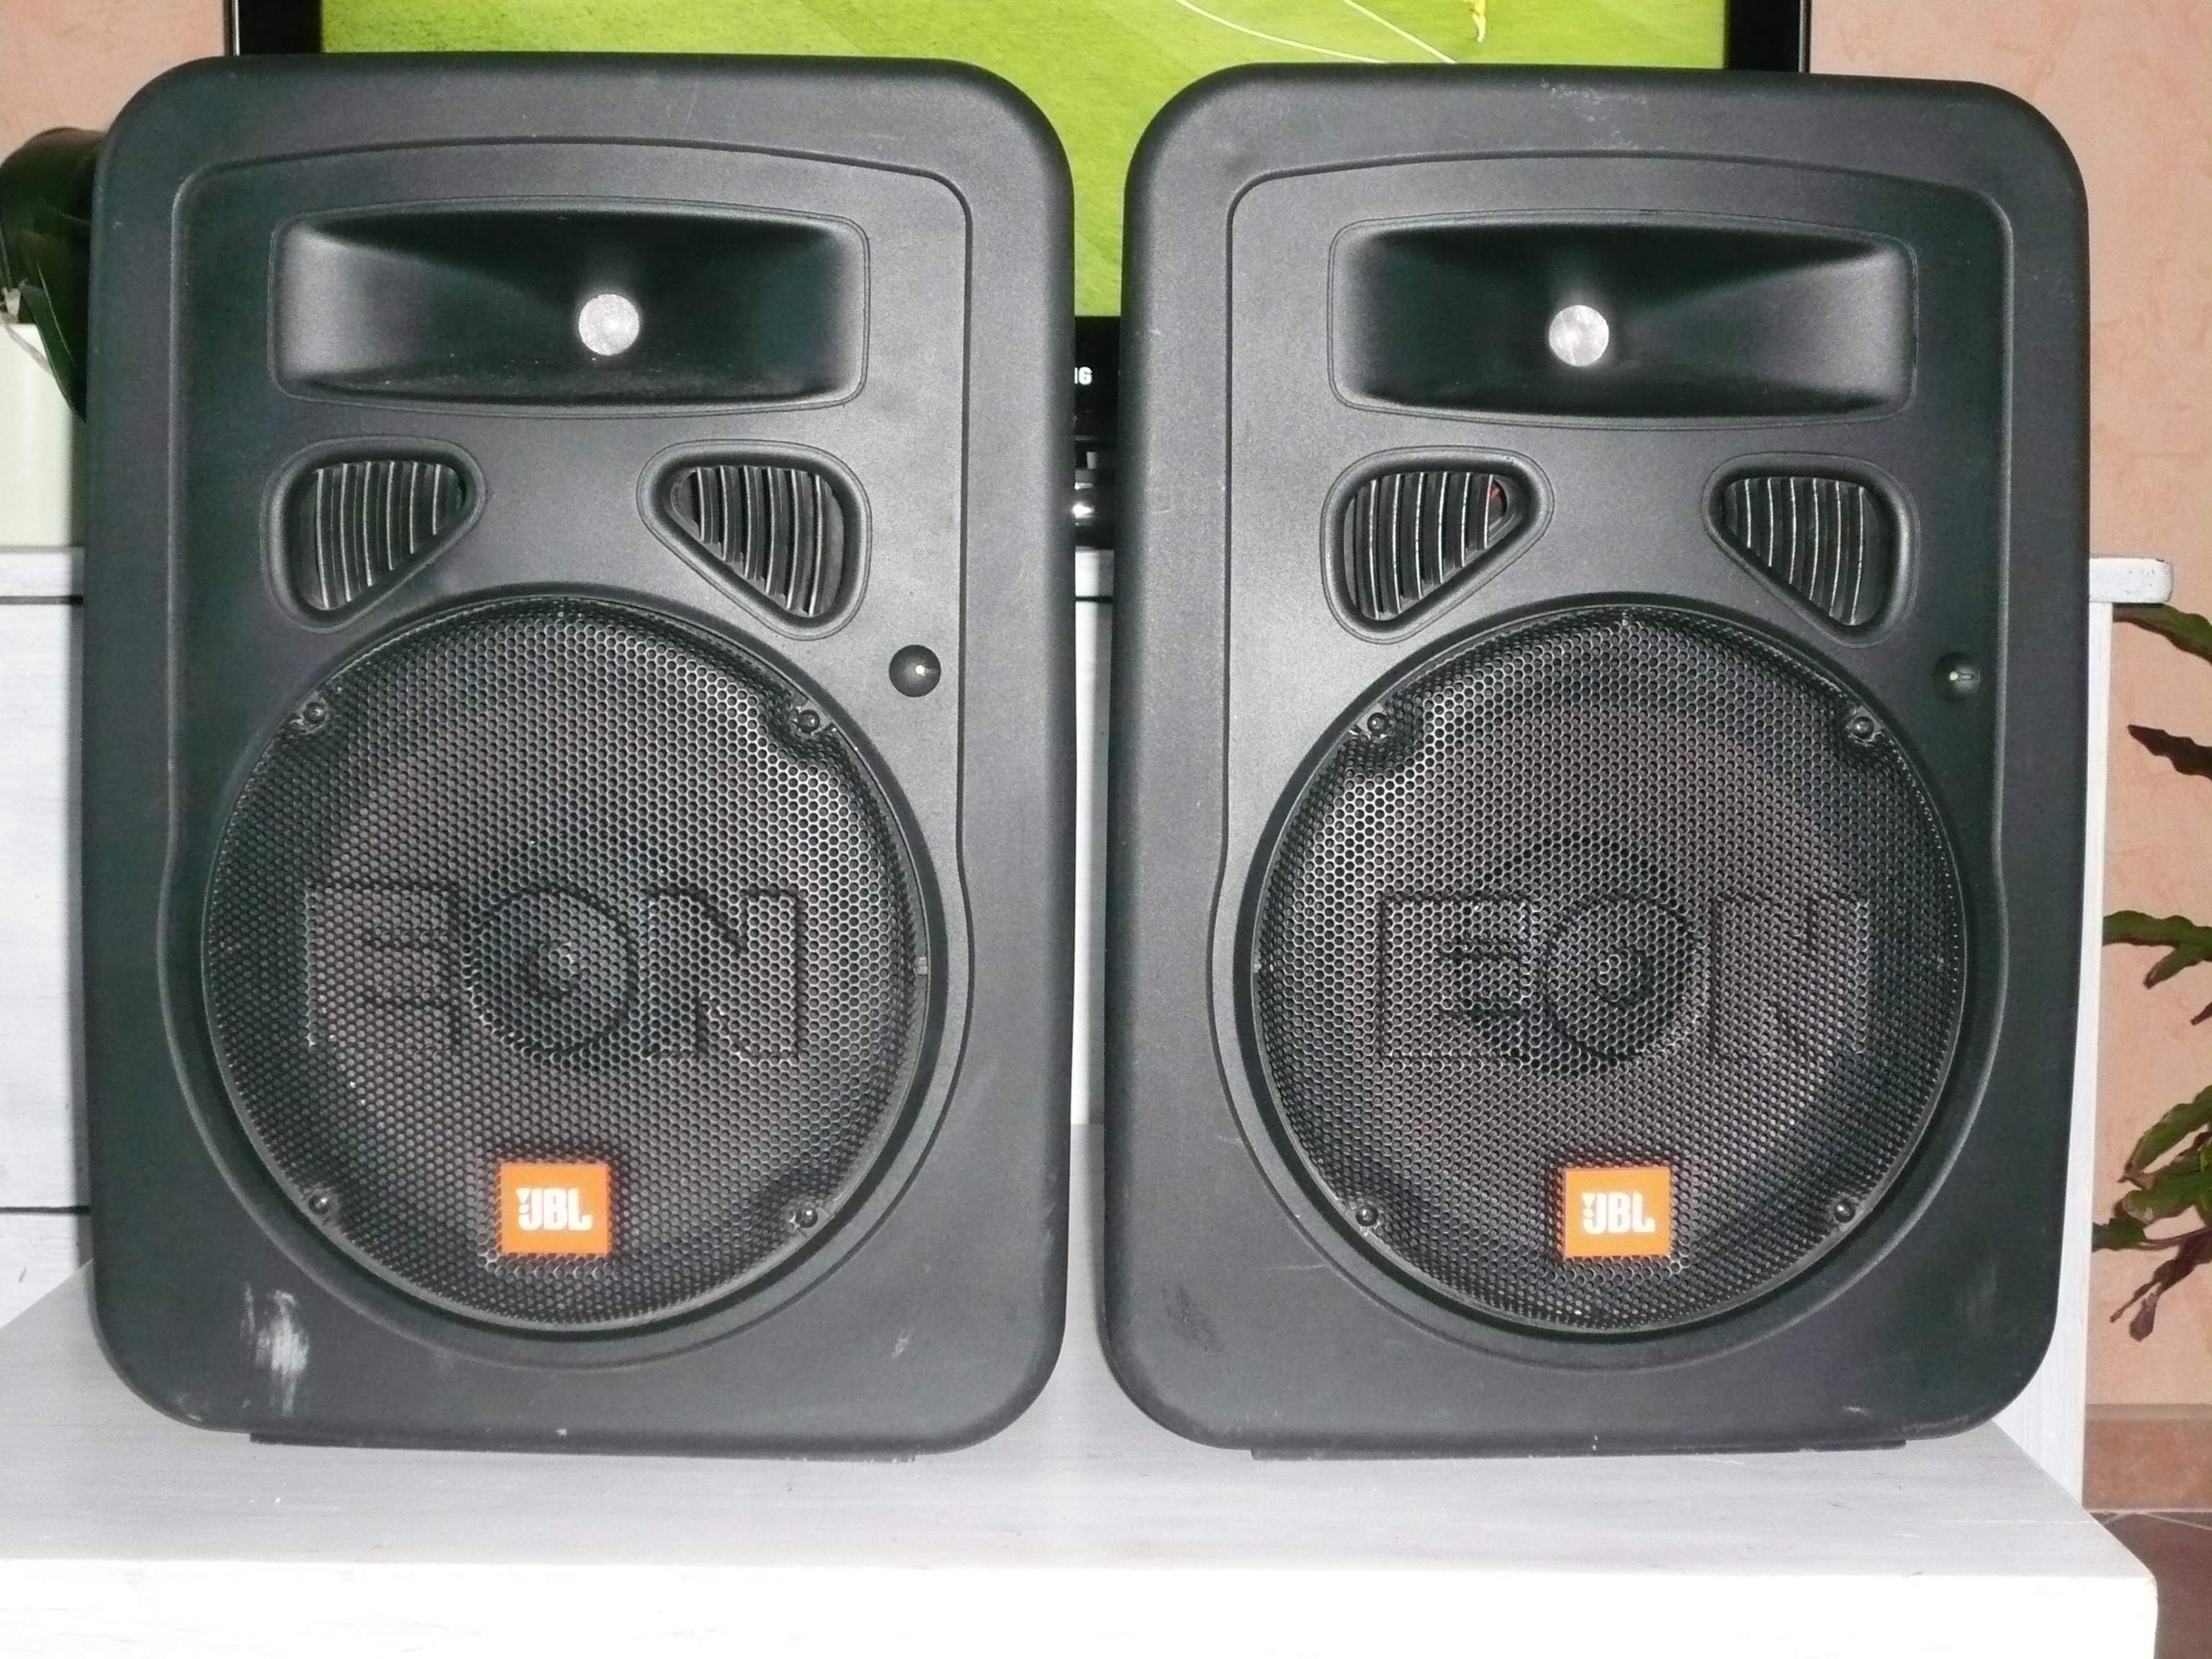 jbl eon 10 g2 image 452967 audiofanzine rh en audiofanzine com JBL Powered Speakers jbl eon10 g2 manual